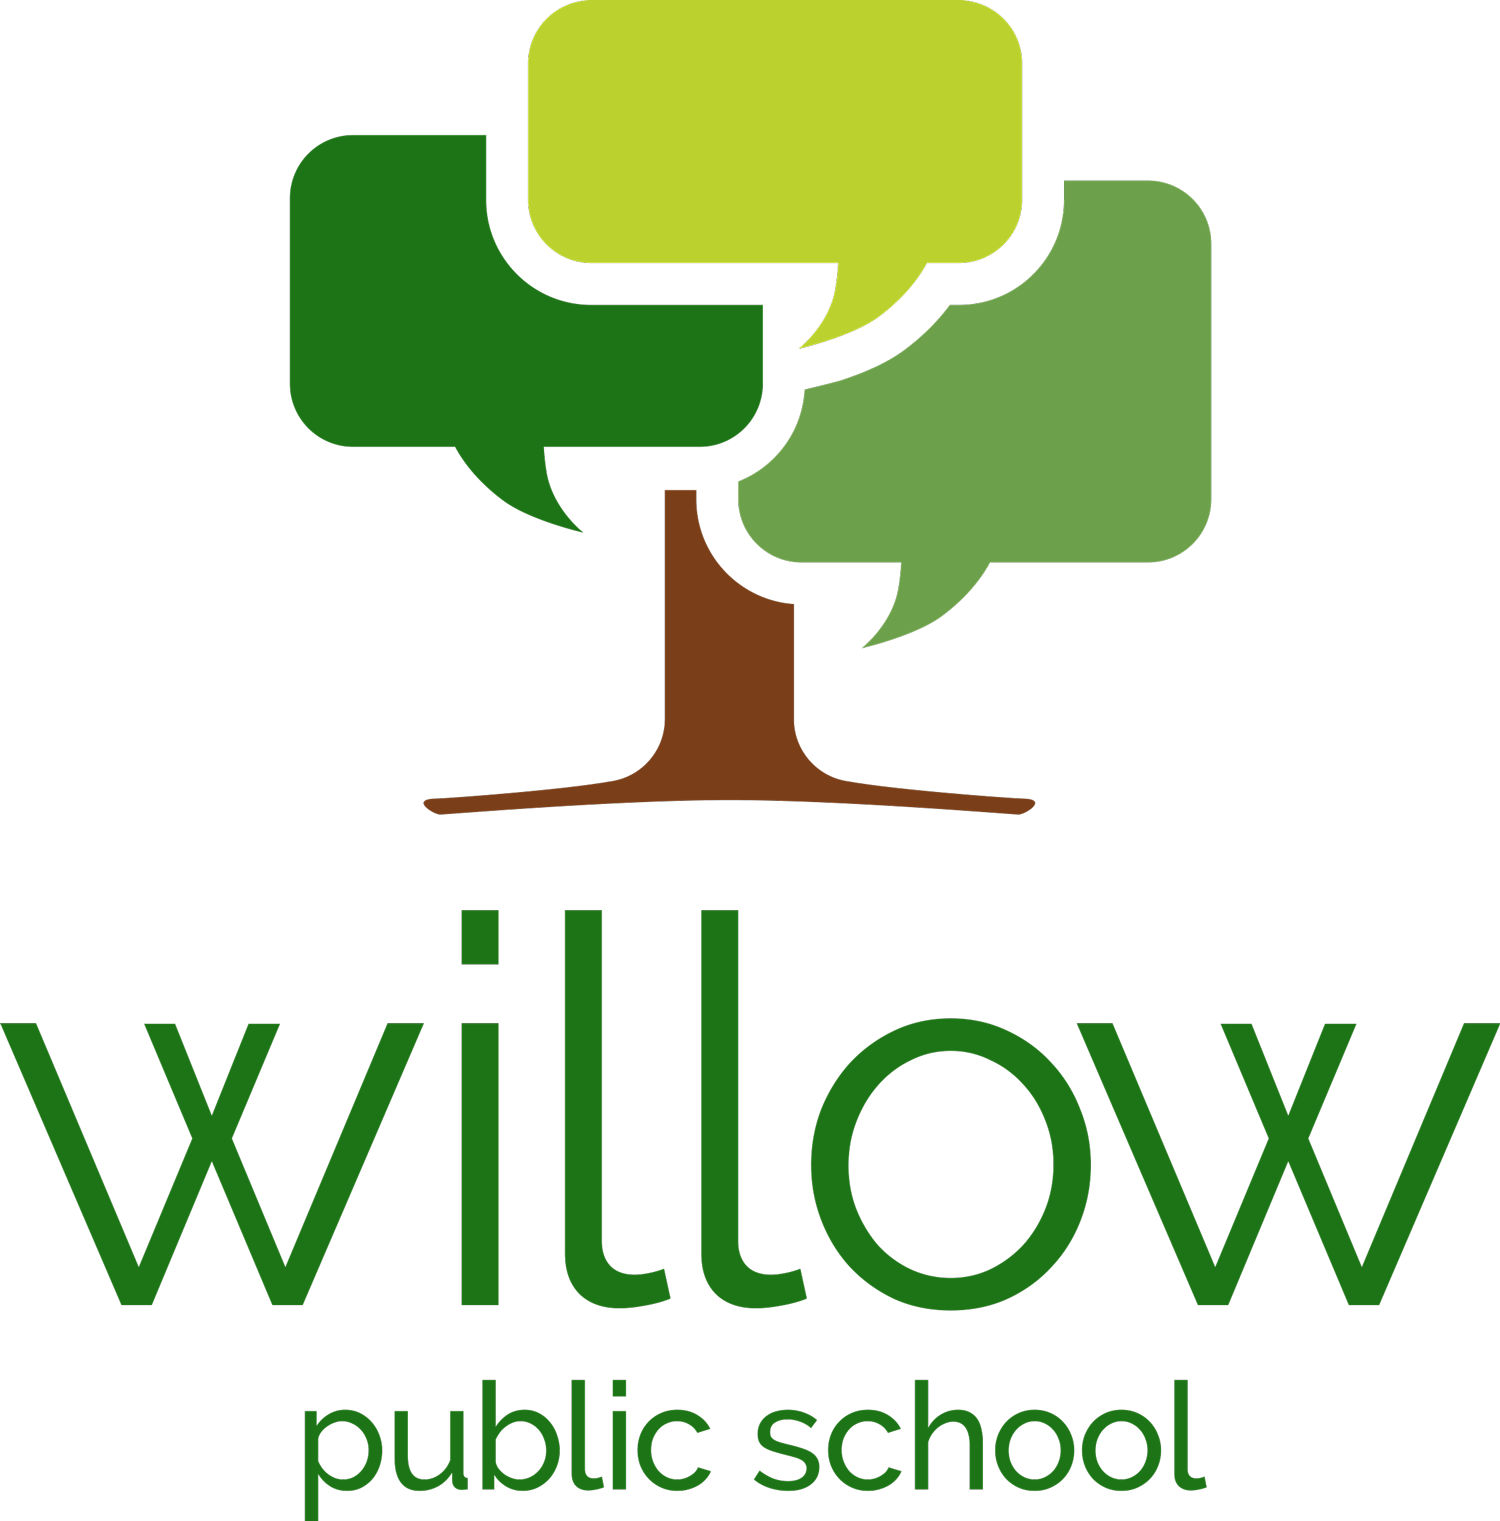 School board meeting clipart clip library download Board Meeting — Willow Public School clip library download